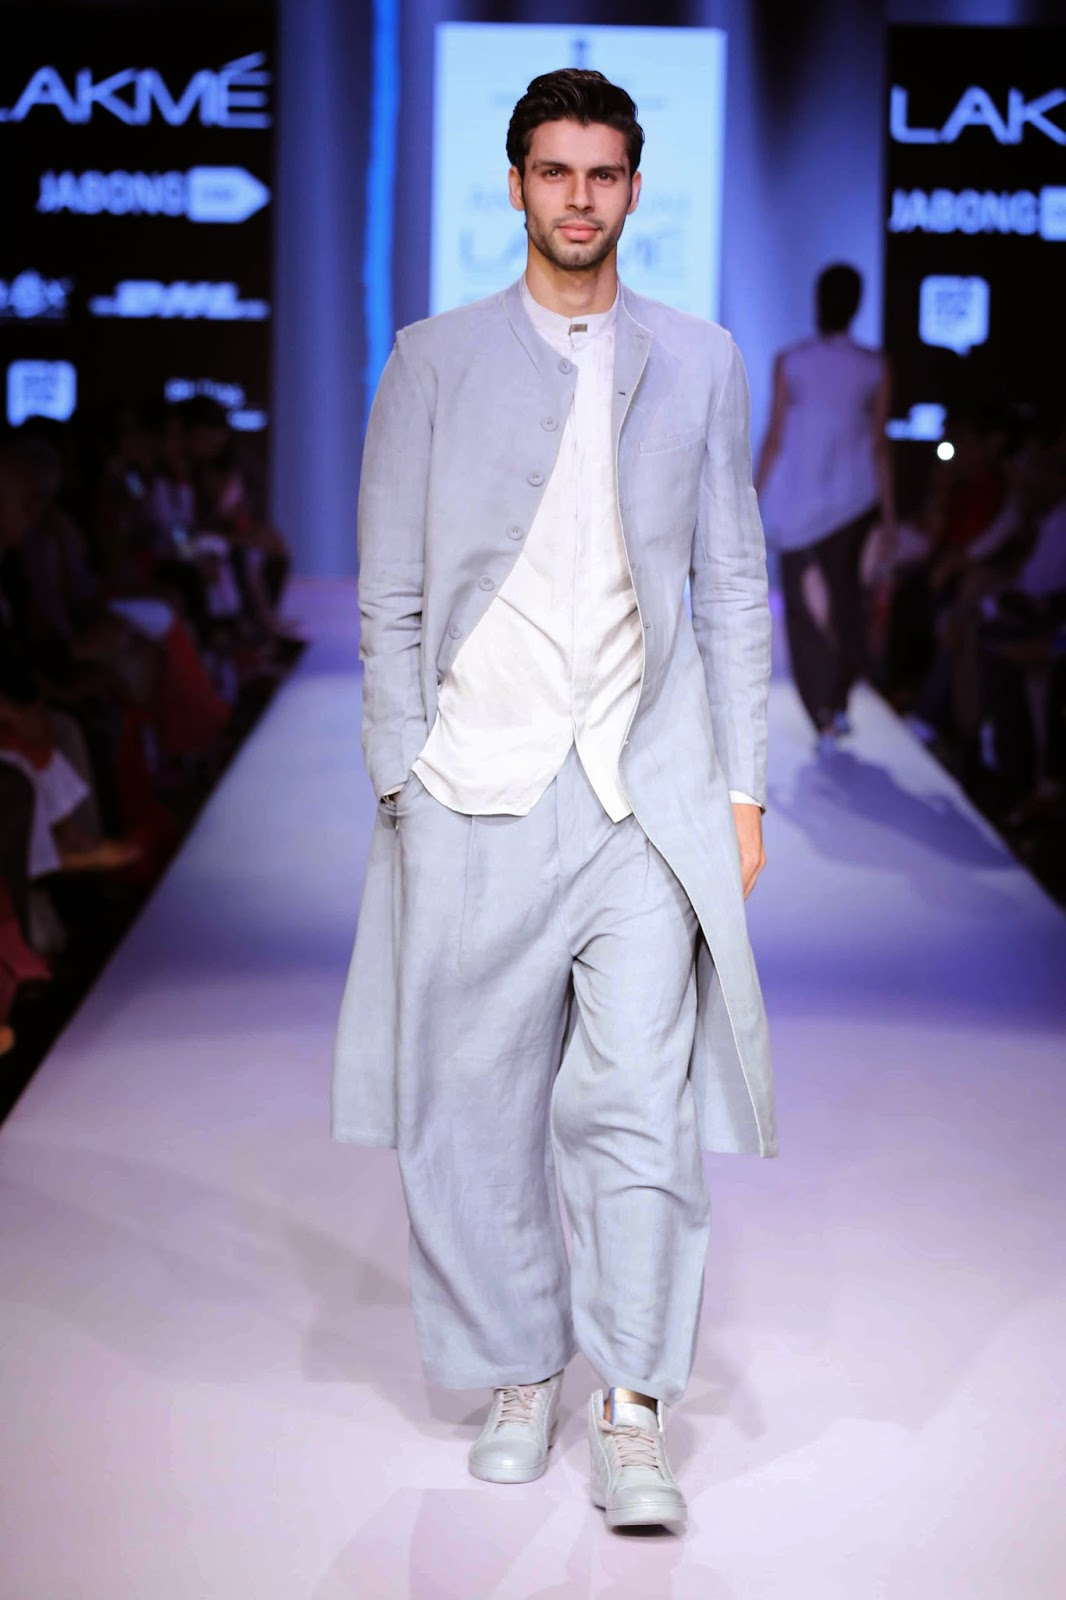 http://aquaintperspective.blogspot.in/, LIFW Day 2, Antar Agni